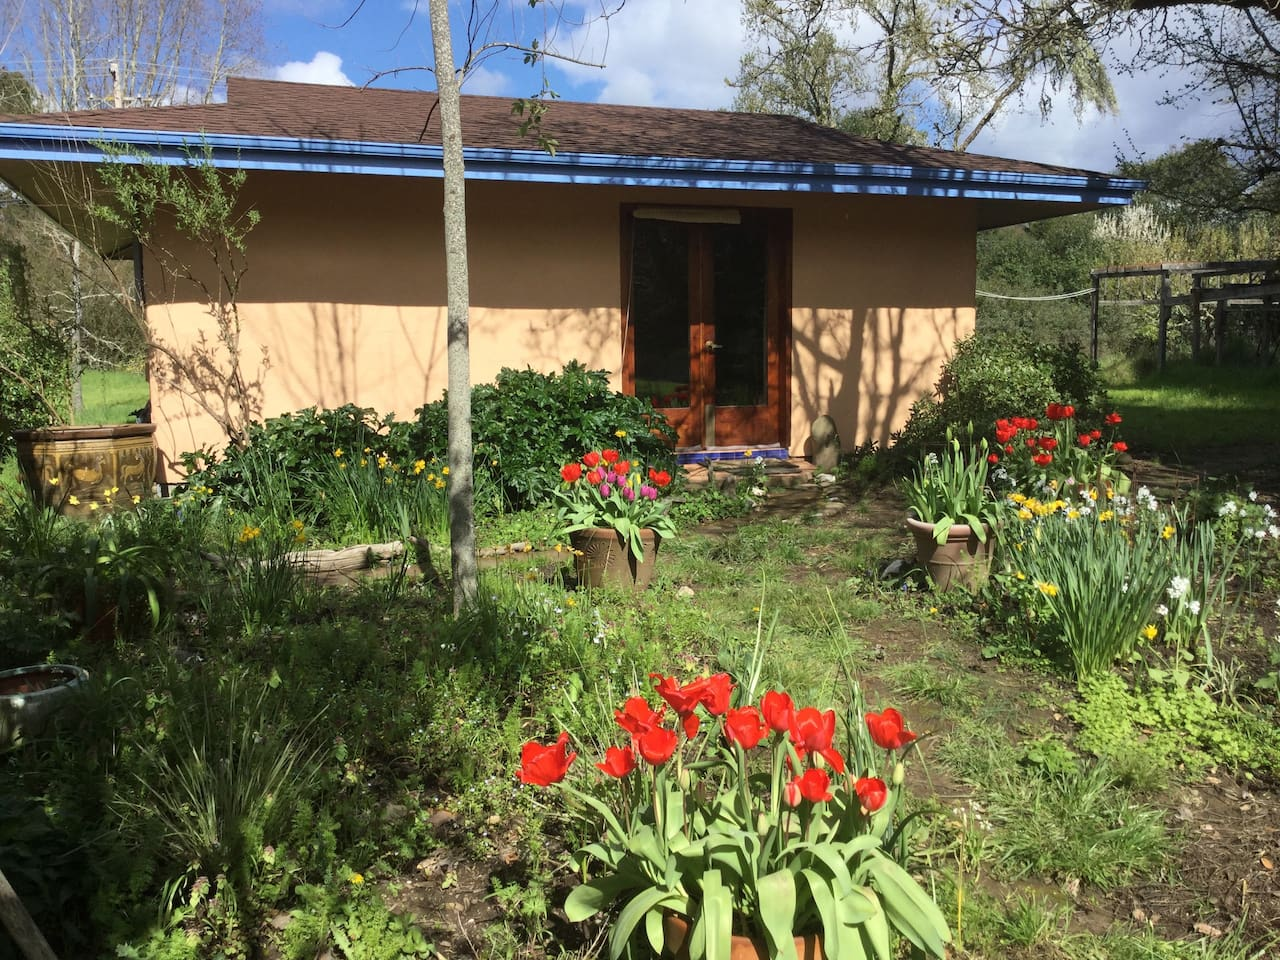 The straw bale guesthouse early April